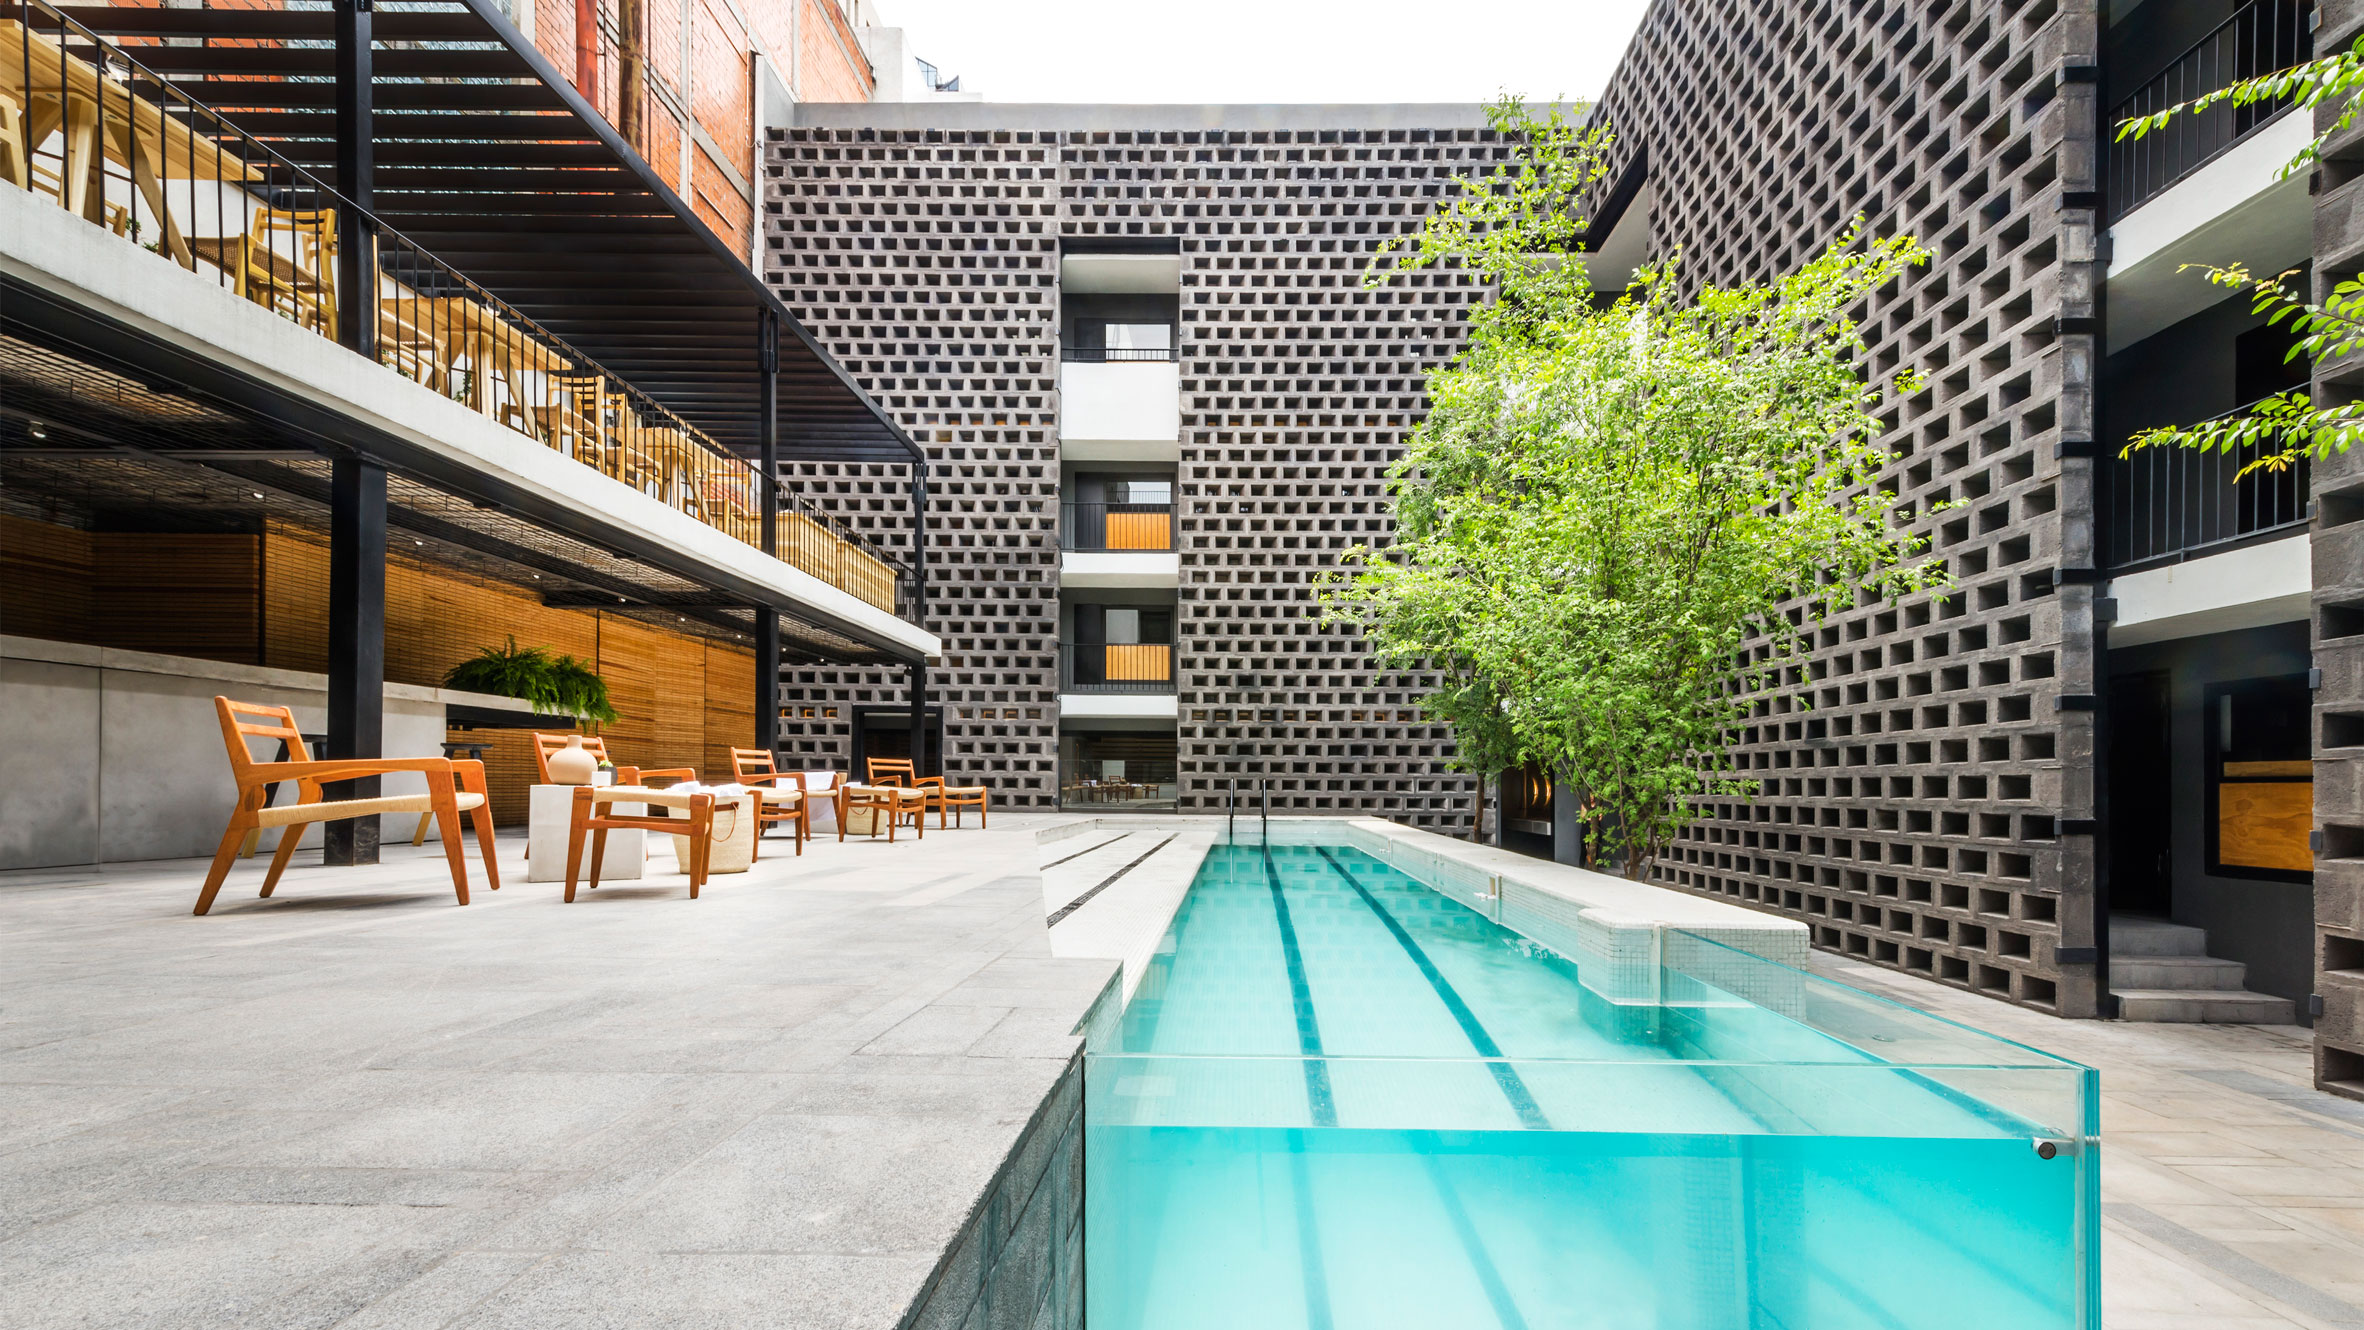 Hotel design and hostel architecture Dezeen magazine - ^